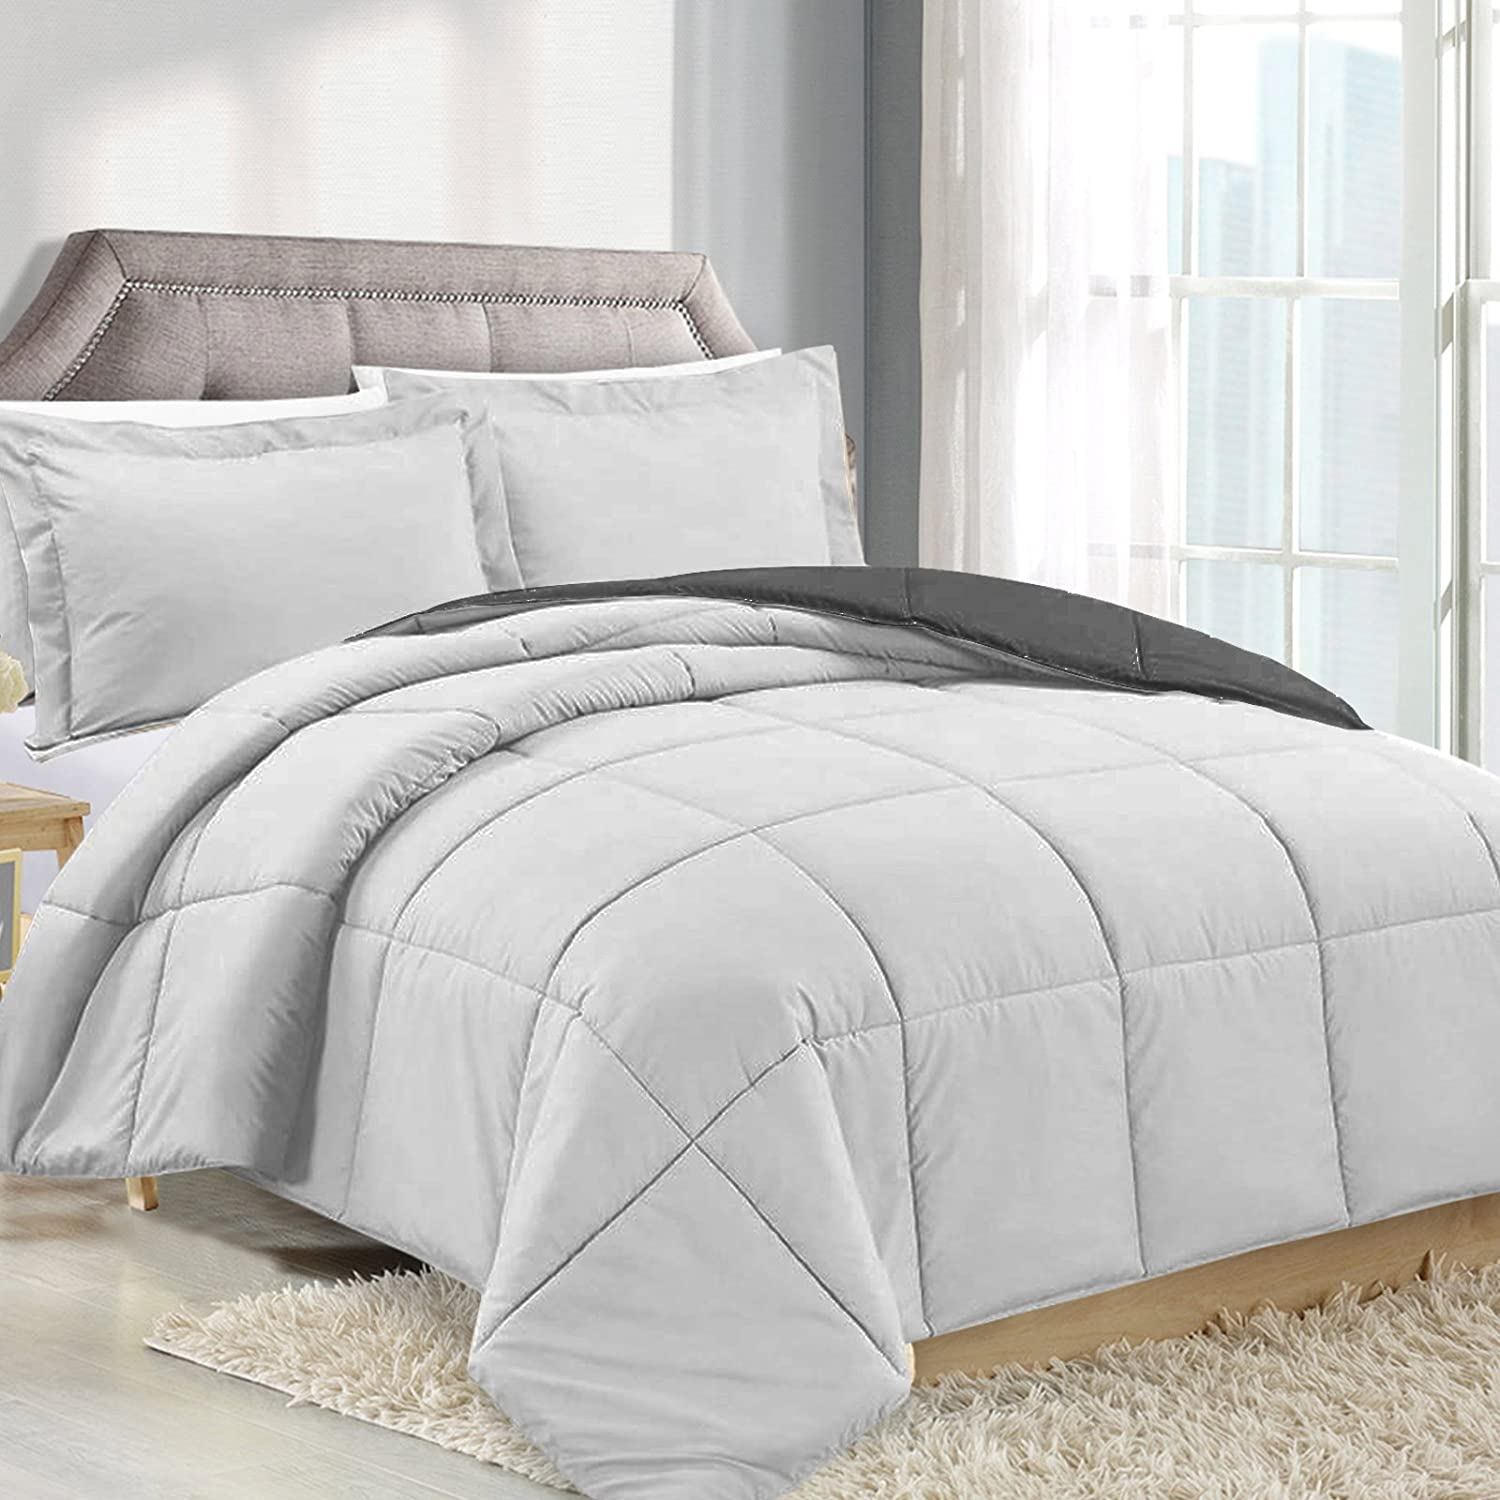 Twin Comforter Reversible Duvet Insert - White - Hypoallergenic, Plush Siliconized Fiberfill, Box Stitched, Luxury Goose Down Alternative Comforter, Protects Against Dust and Allergens Clara Clark COMIN18JU078429